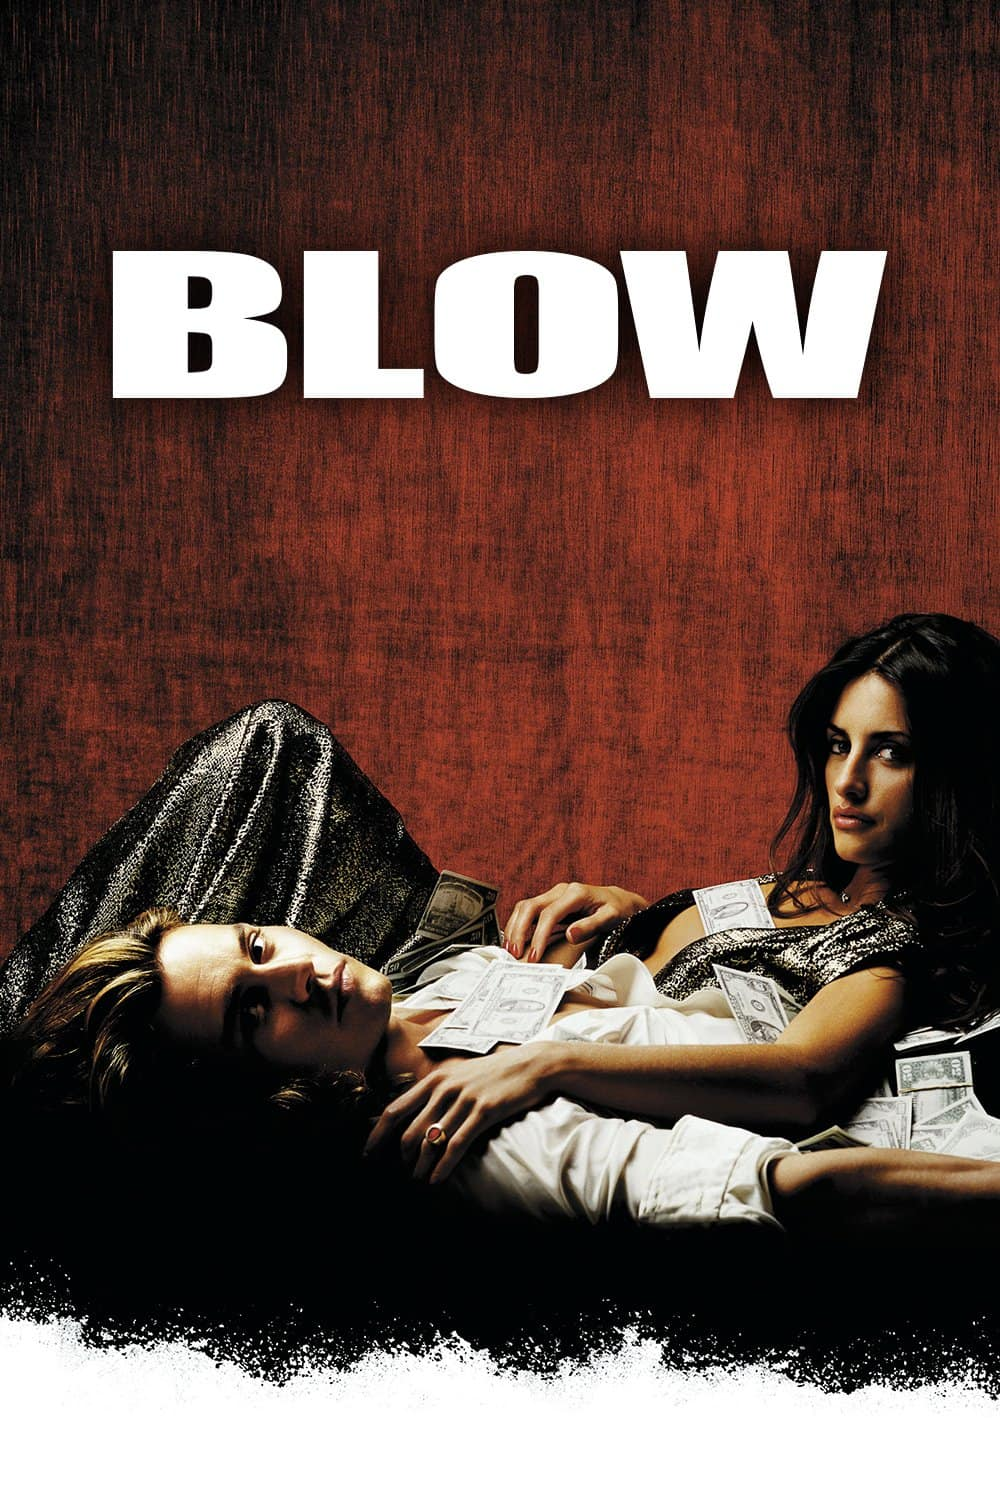 Blow, 2001